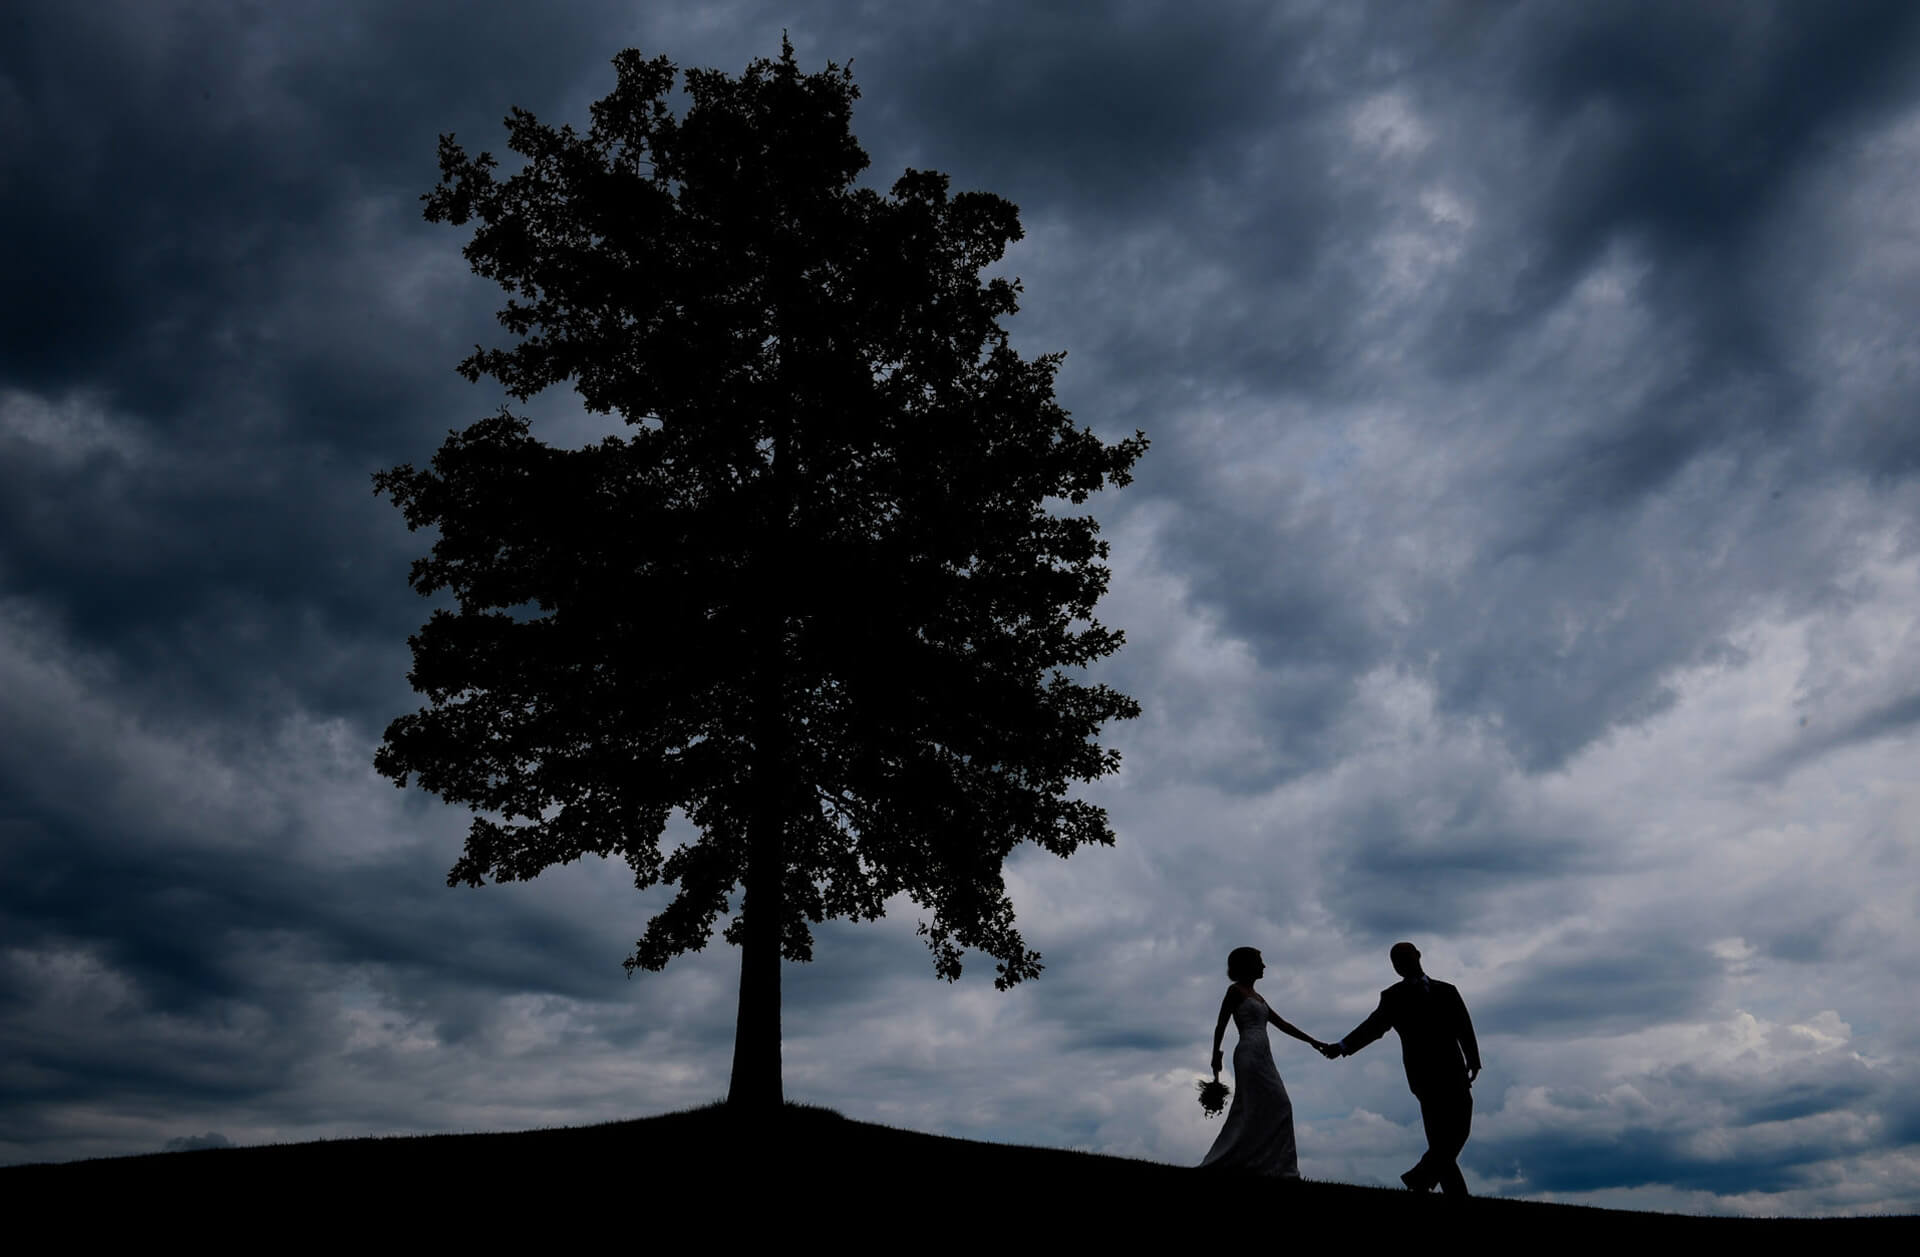 A stormy day made for a cool, dramatic wedding portrait of the bride and groom at the Coyote Preserve in metro Detroit, Michigan.